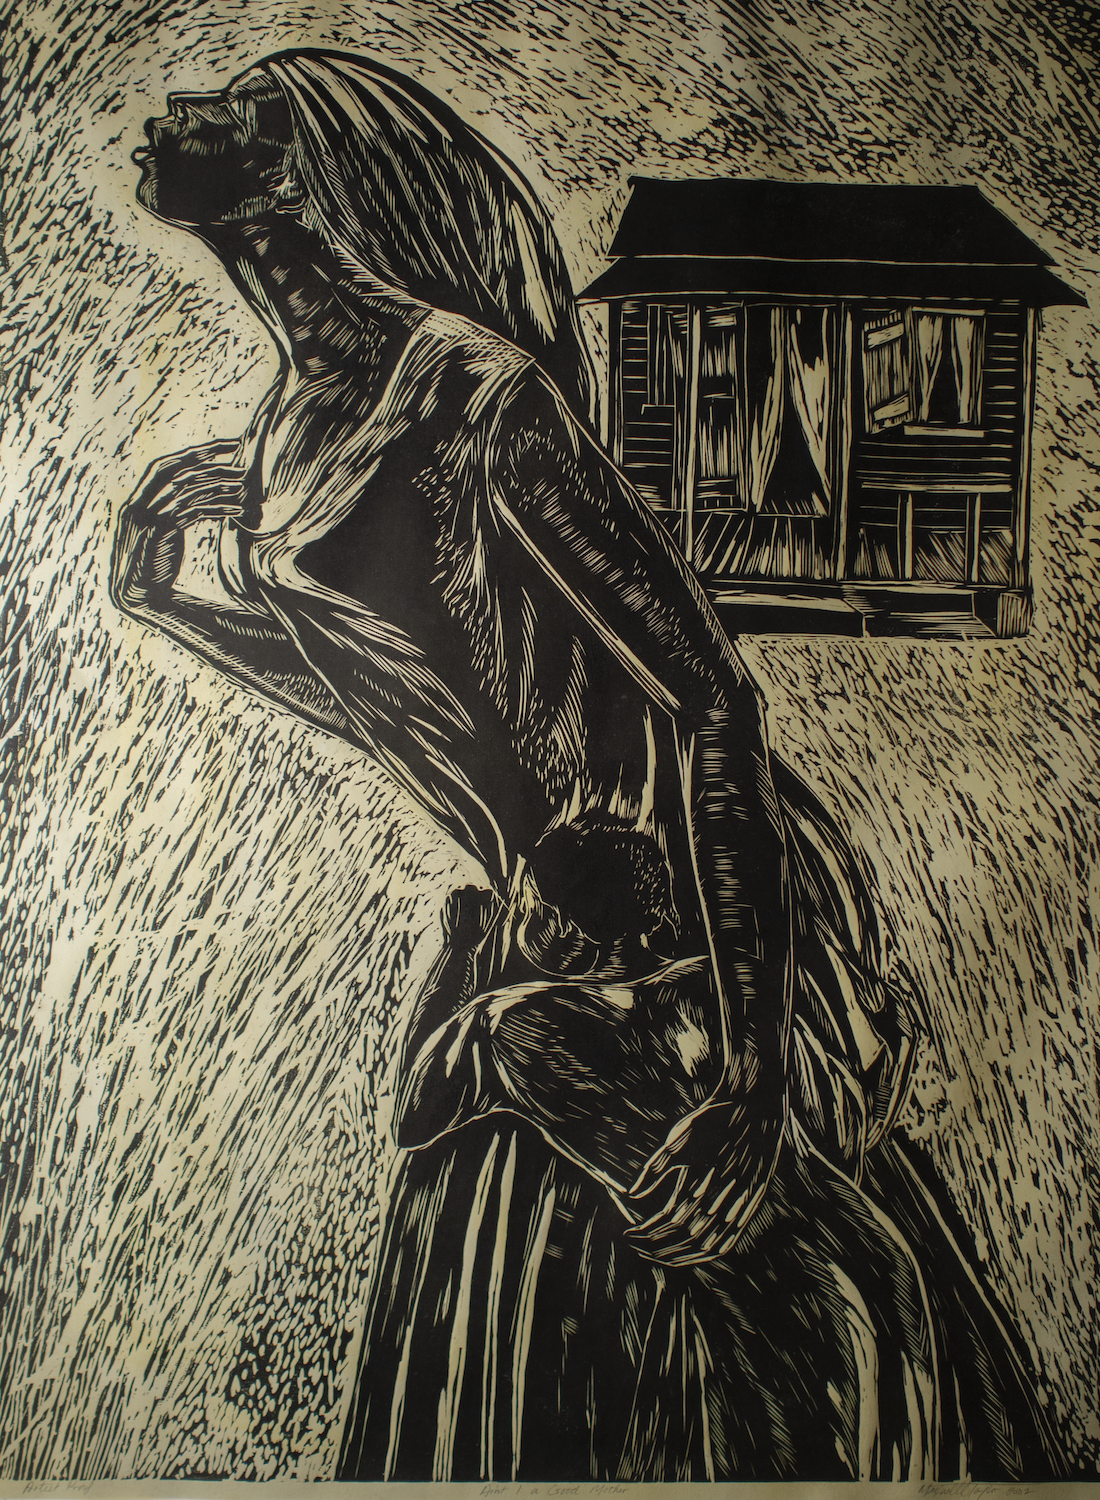 """Ain't I A Good Mother"" (2003), Maxwell Taylor, woodcut print on paper, 48 x 36 inches. Part of the National Collection of The Bahamas."